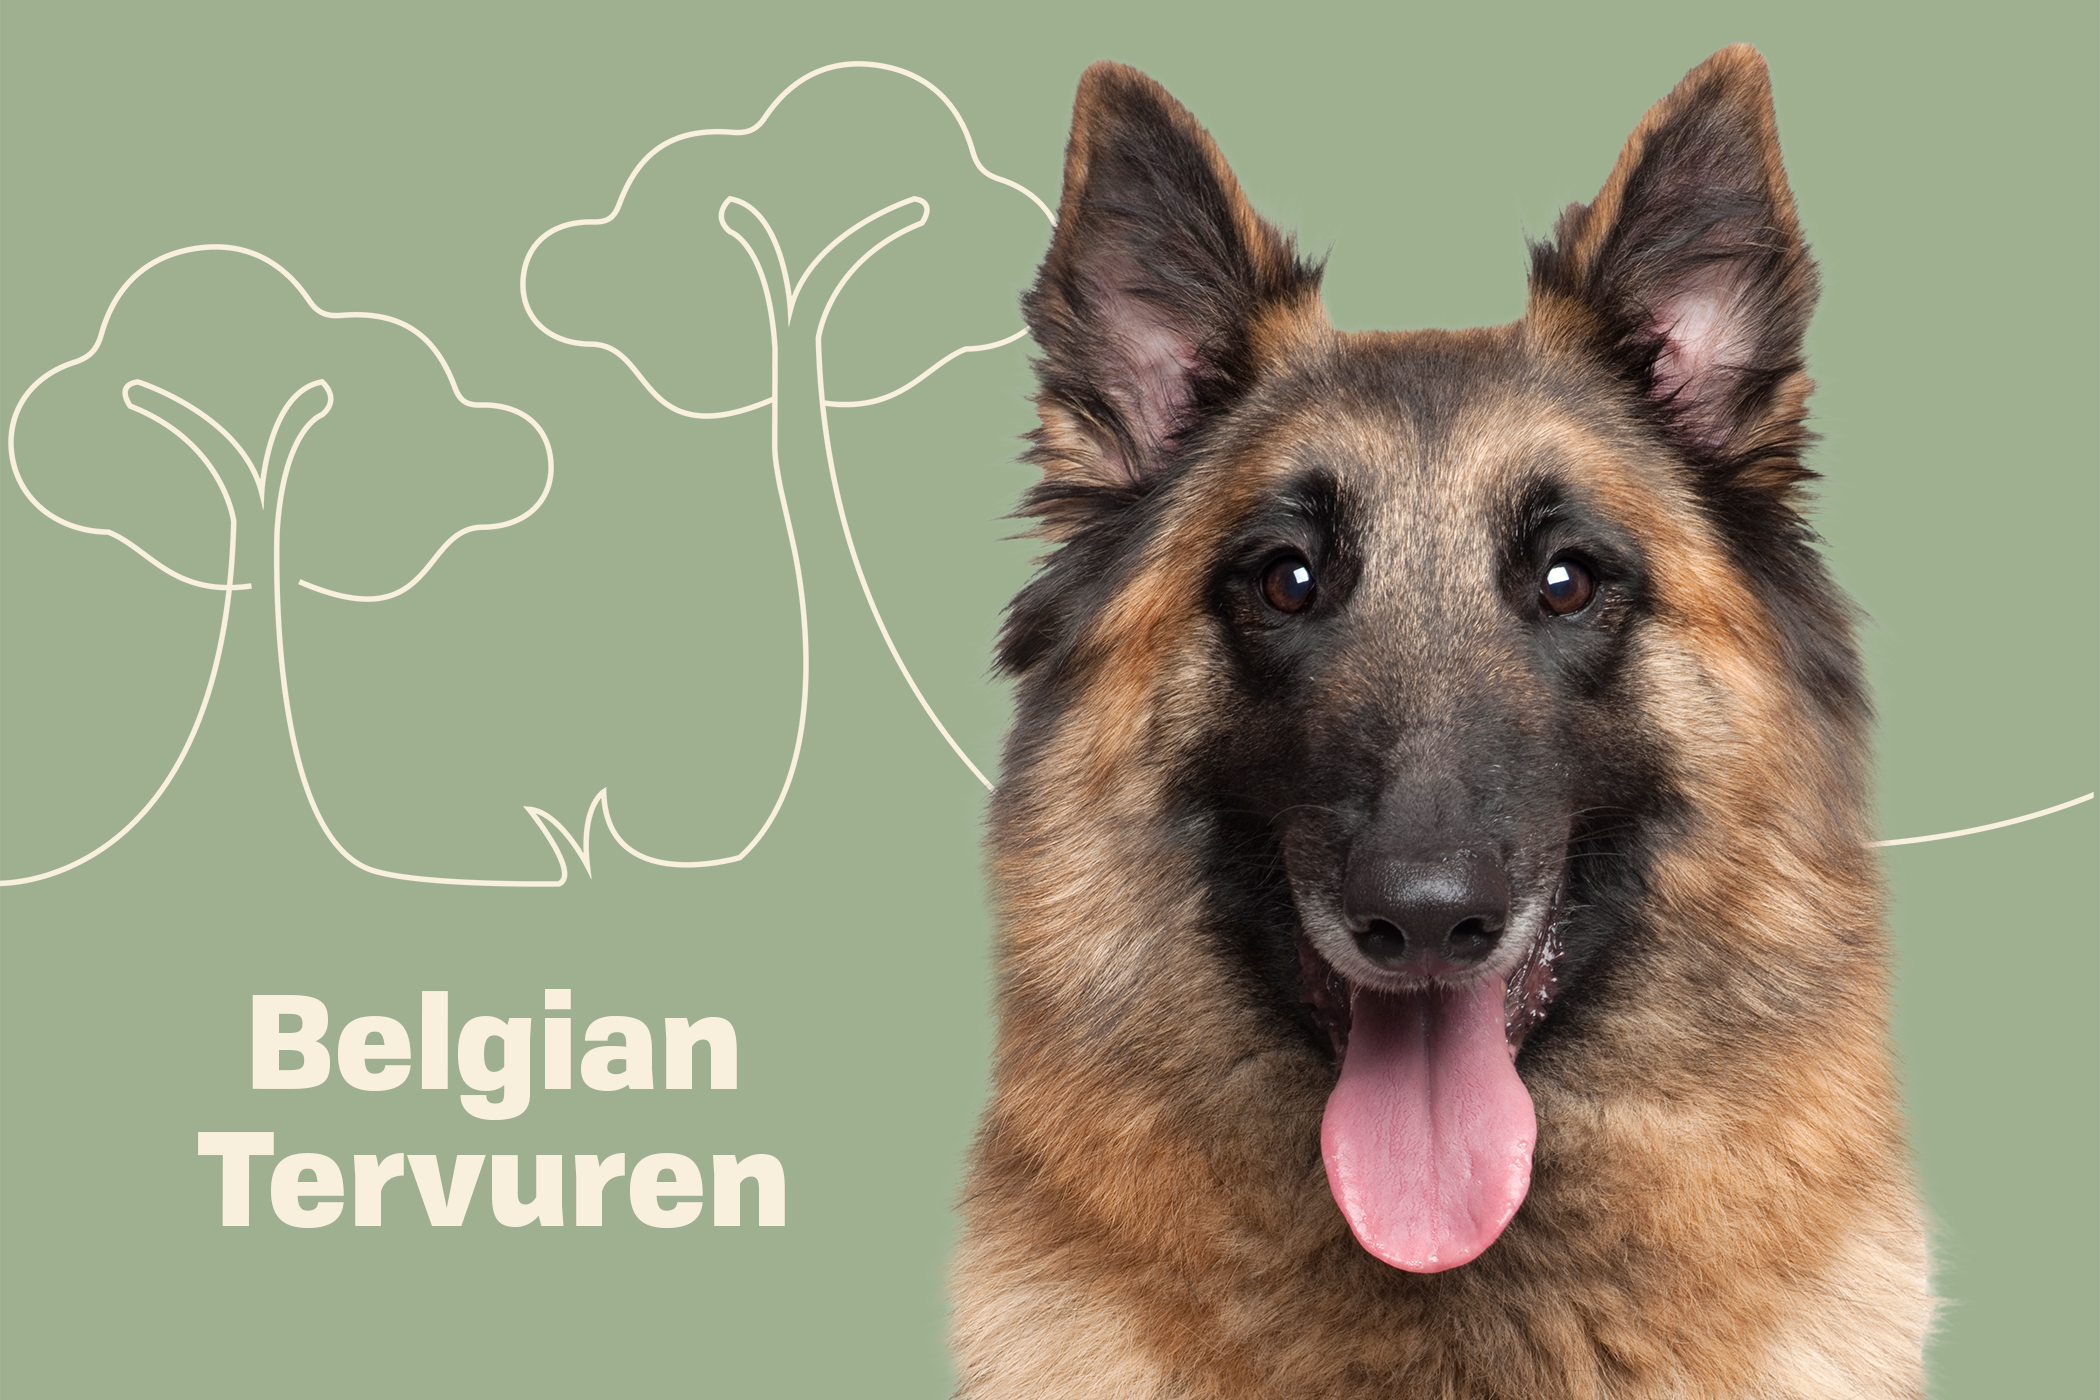 Belgian Tervuren dog breed profile treatment dog with tongue out on a green background